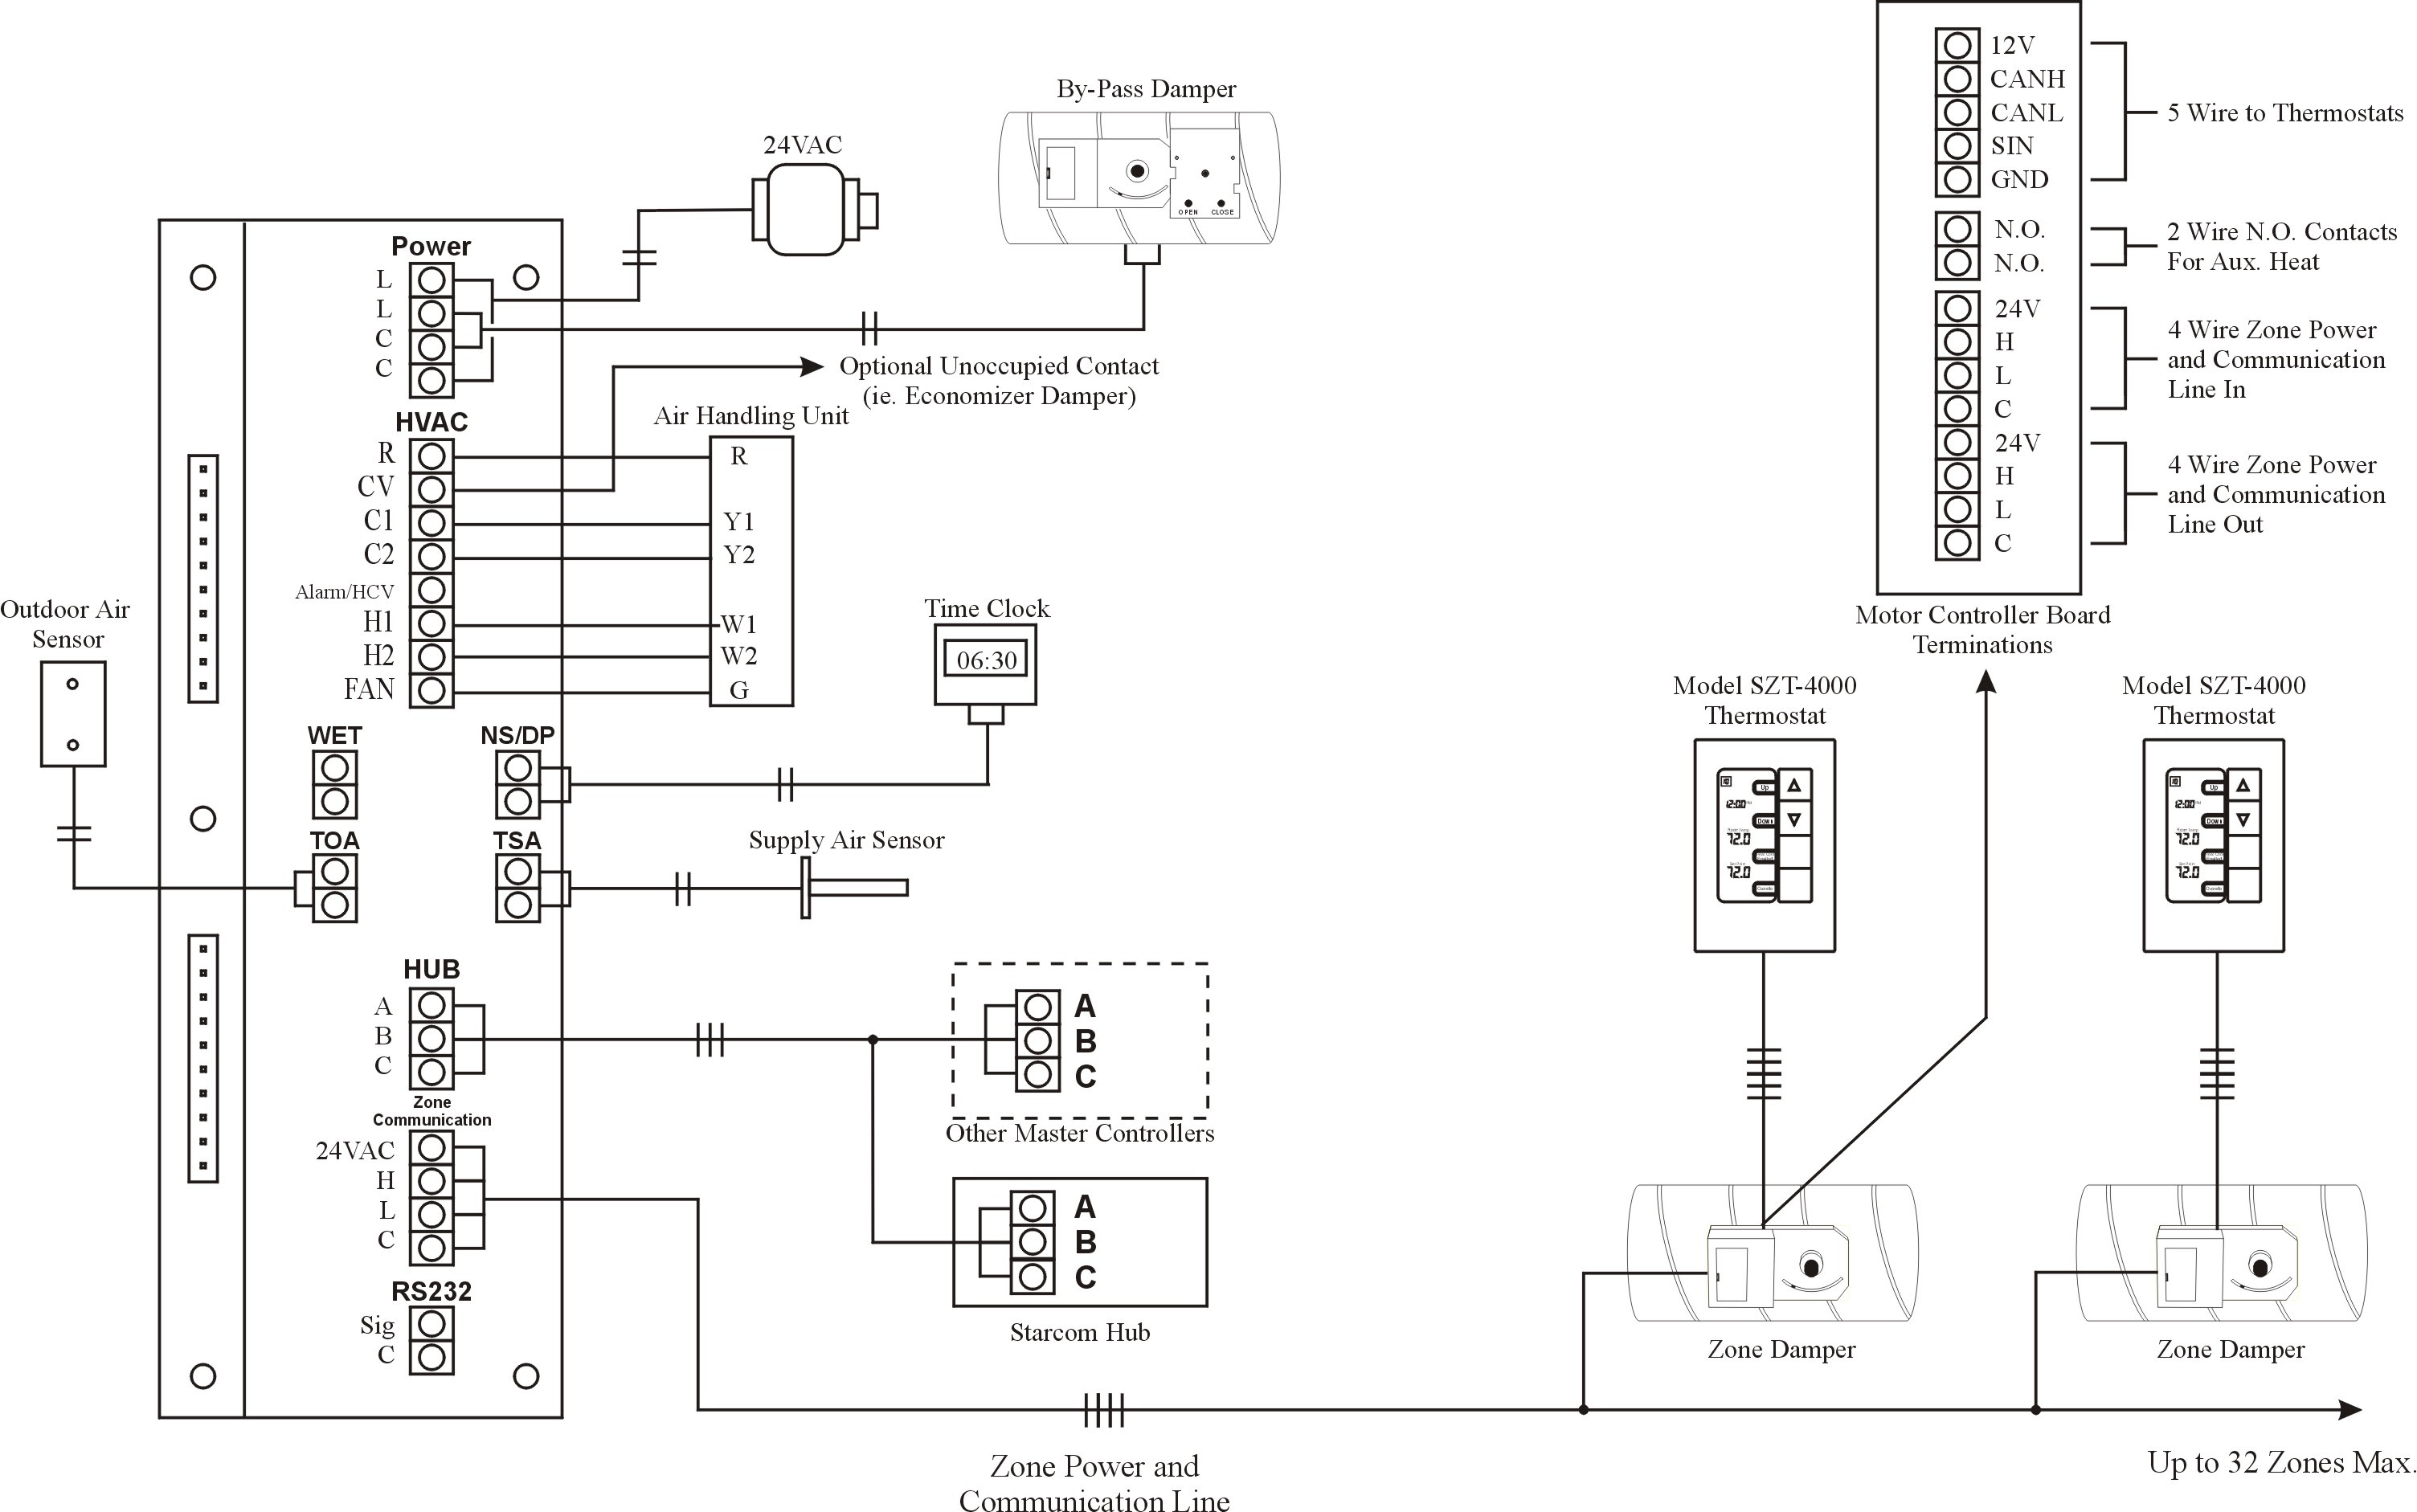 Home Security System Circuit Diagram The Y Guide